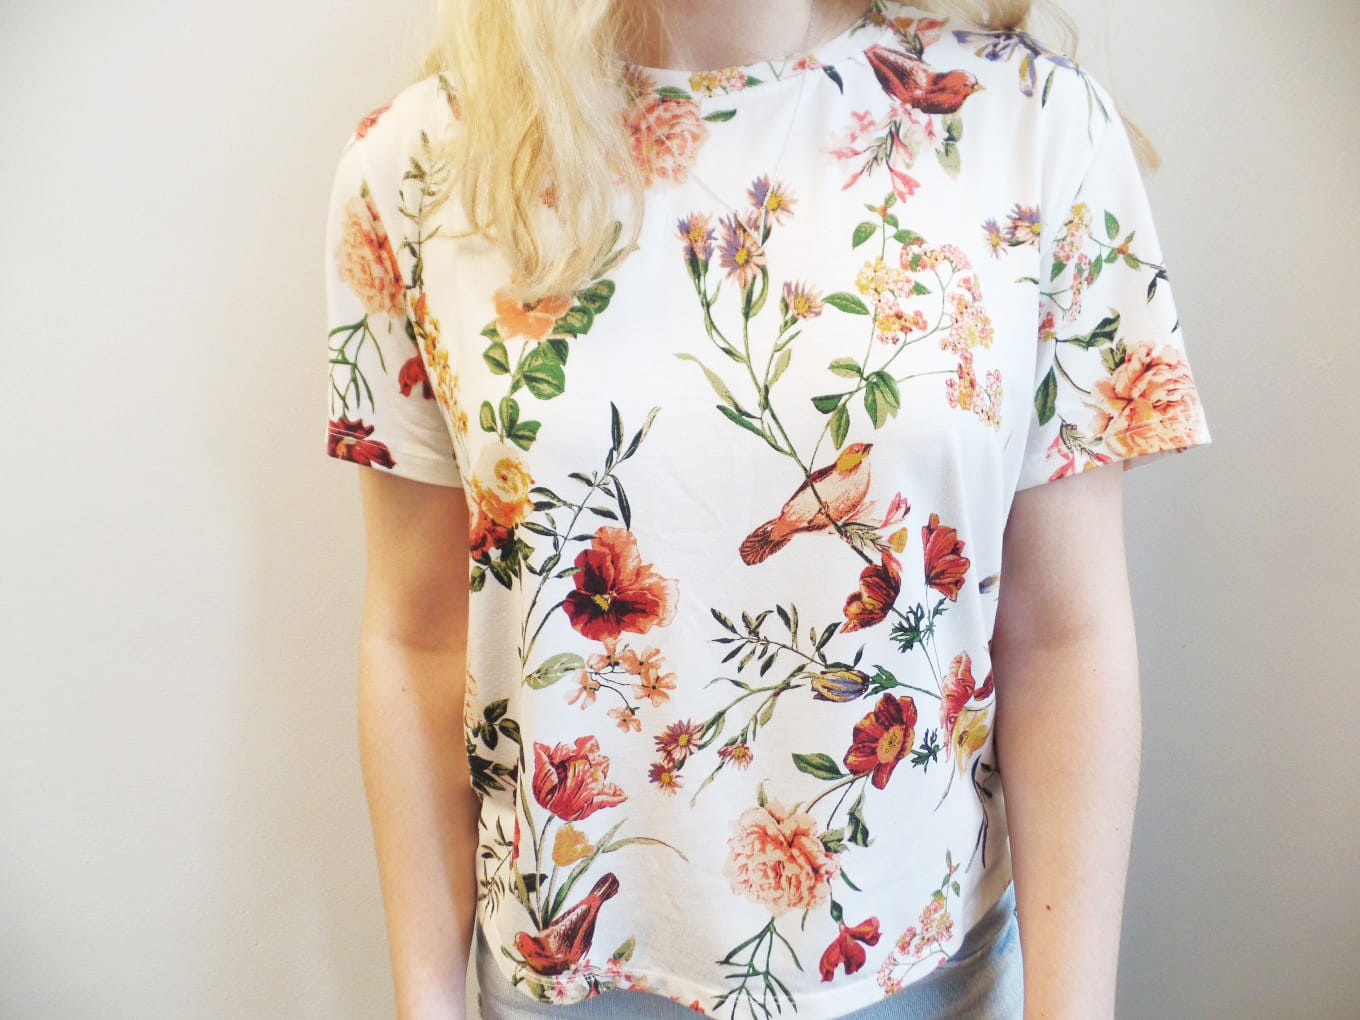 Veronica's short sleeve, crew neck top is covered in a green and orange floral pattern.